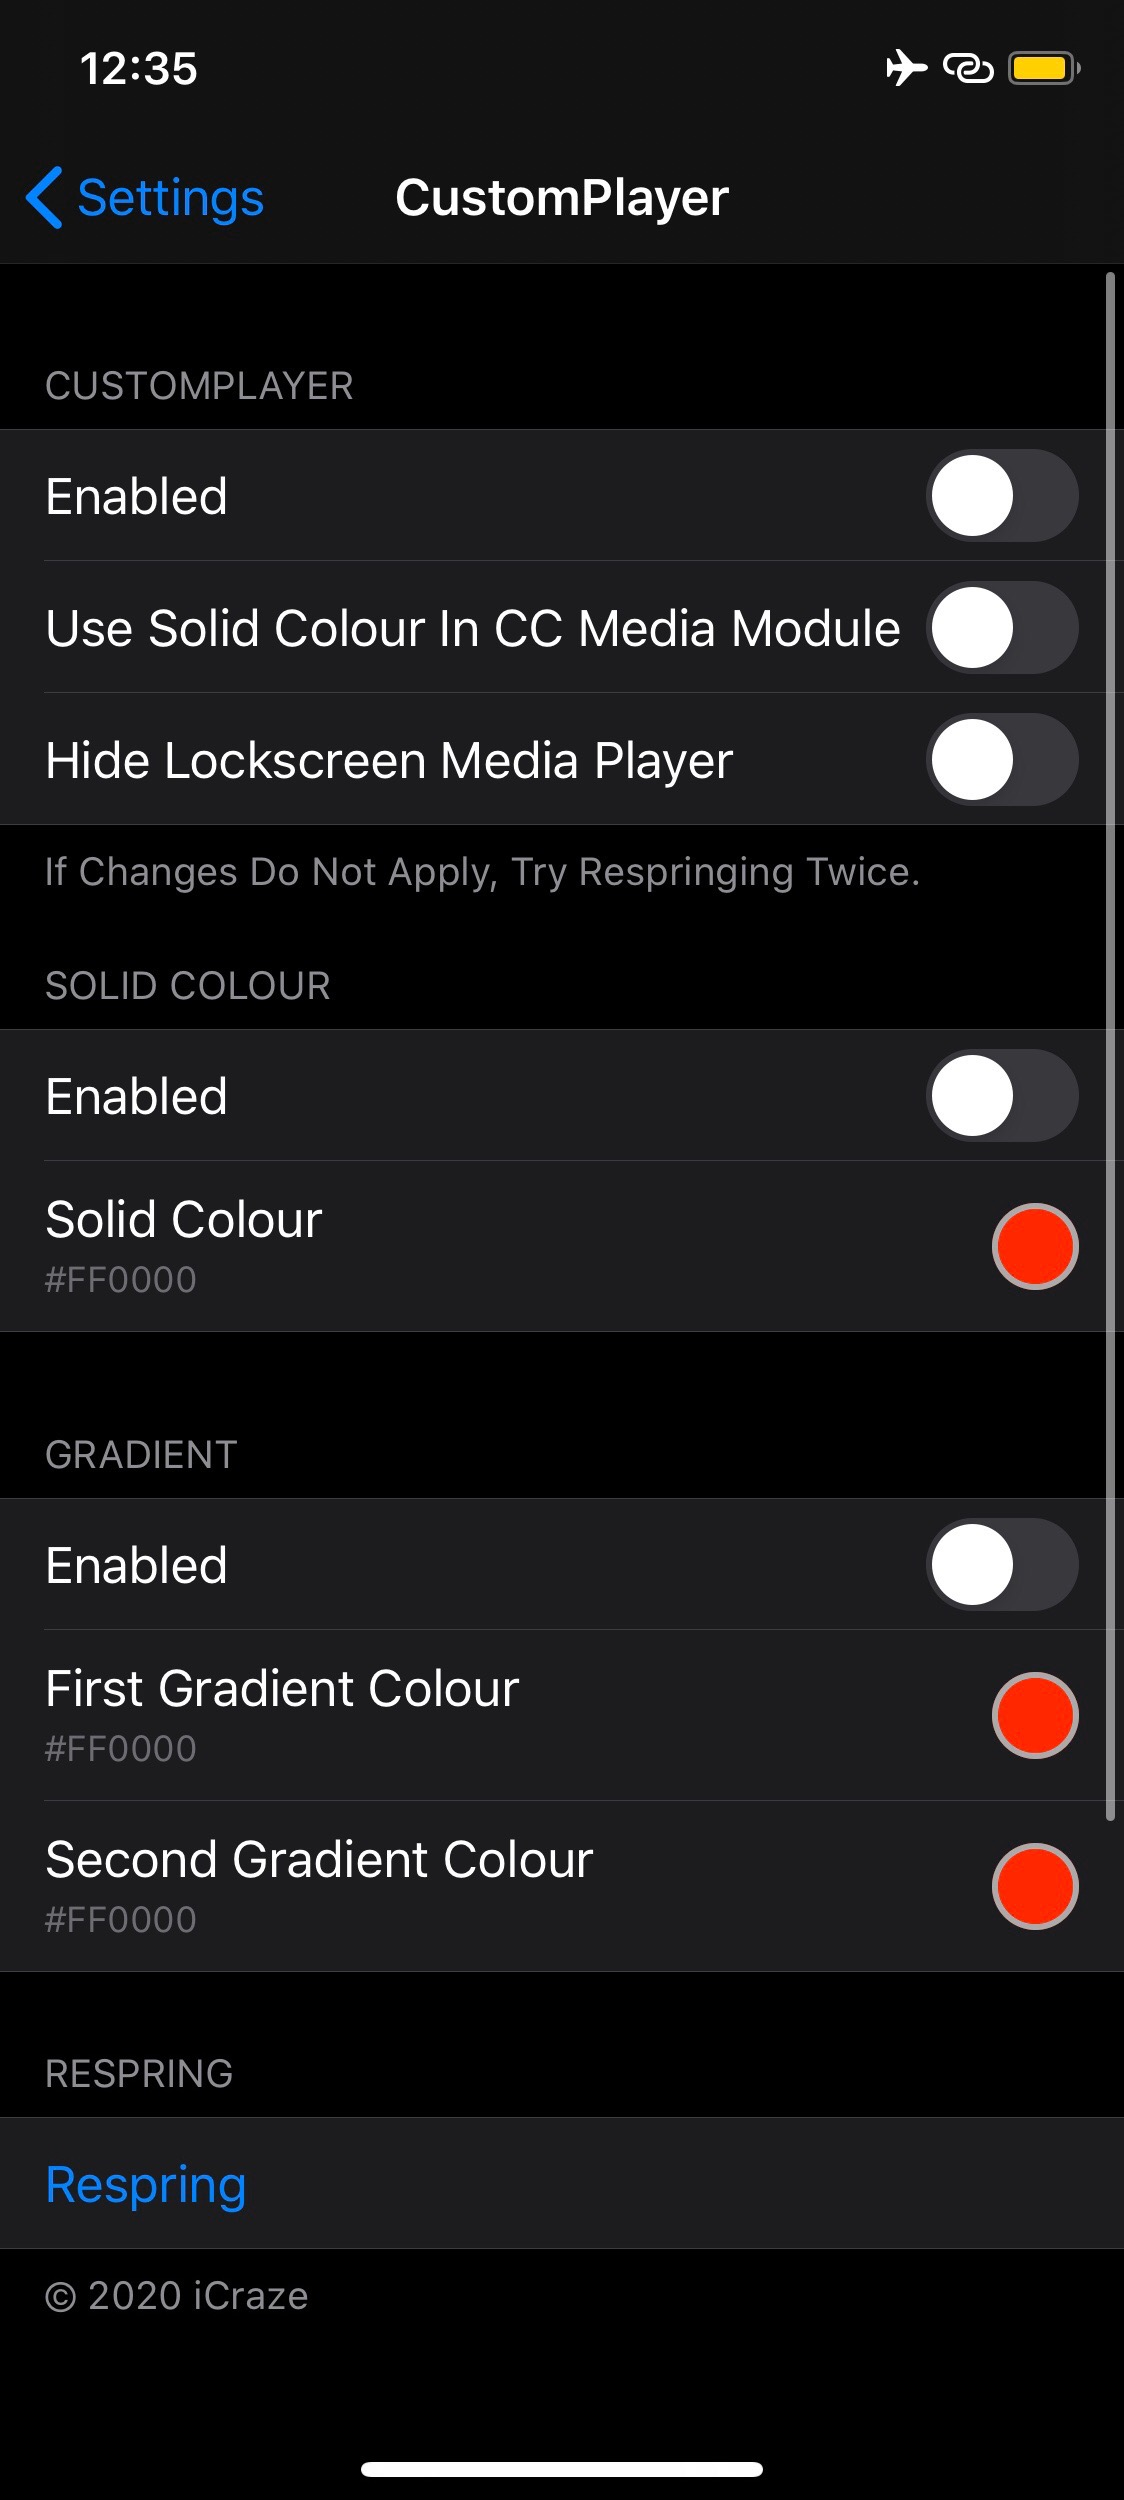 CustomPlayer allows you to colorize the iOS Now Playing 3 widget